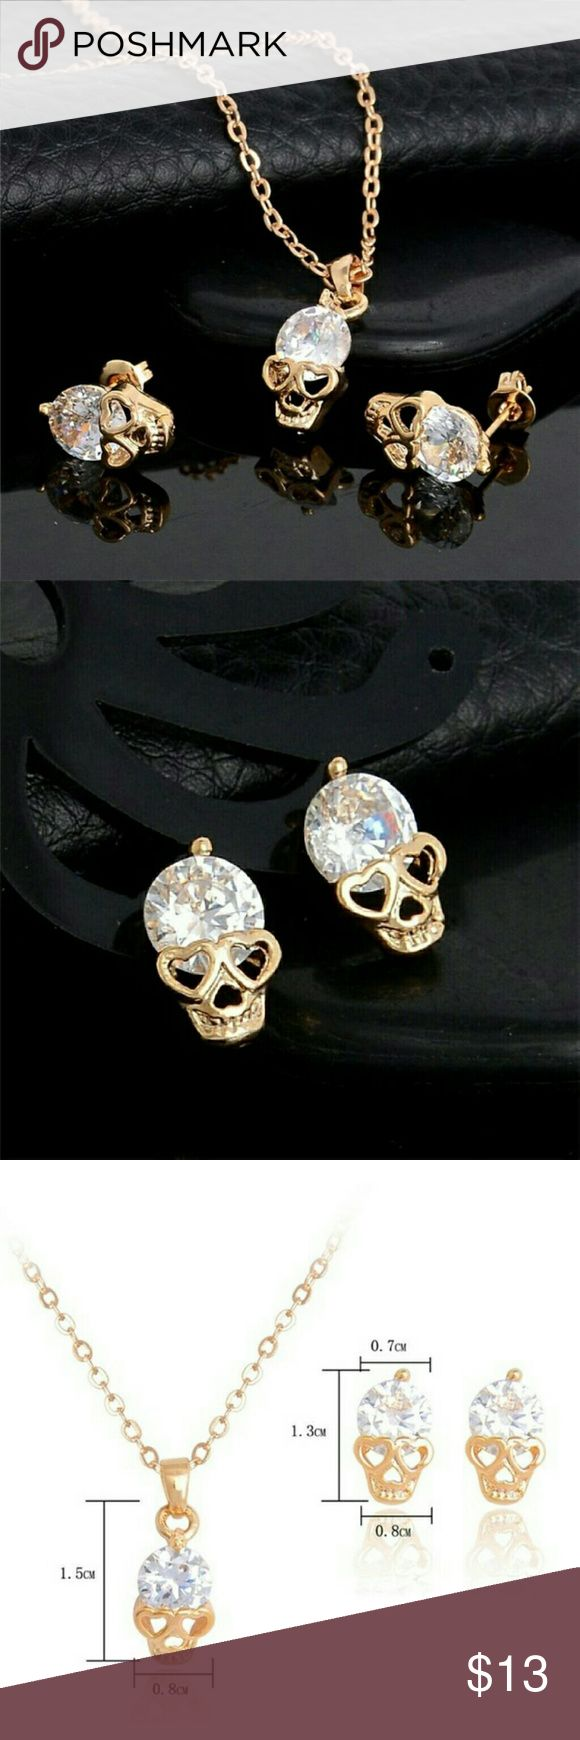 3 Piece Set - 18K Gold & Cubic Zirconia Skulls If you love skulls, these are a must have!  Statement pieces that show personality and at the same time, are pretty and feminine!  1 Set of Earrings and 1 Necklace - a 3 Piece Set!  Product Details: ? The skulls eyes are ?hearts? - super cute! ? Skulls are 18K Gold Filled ? Diamonds are Cubic Zirconia  Q:? 18K Gold Filled? What does that mean? A: A layer of 18K gold is bonded under heat and pressure to the surface of a base metal underneath…